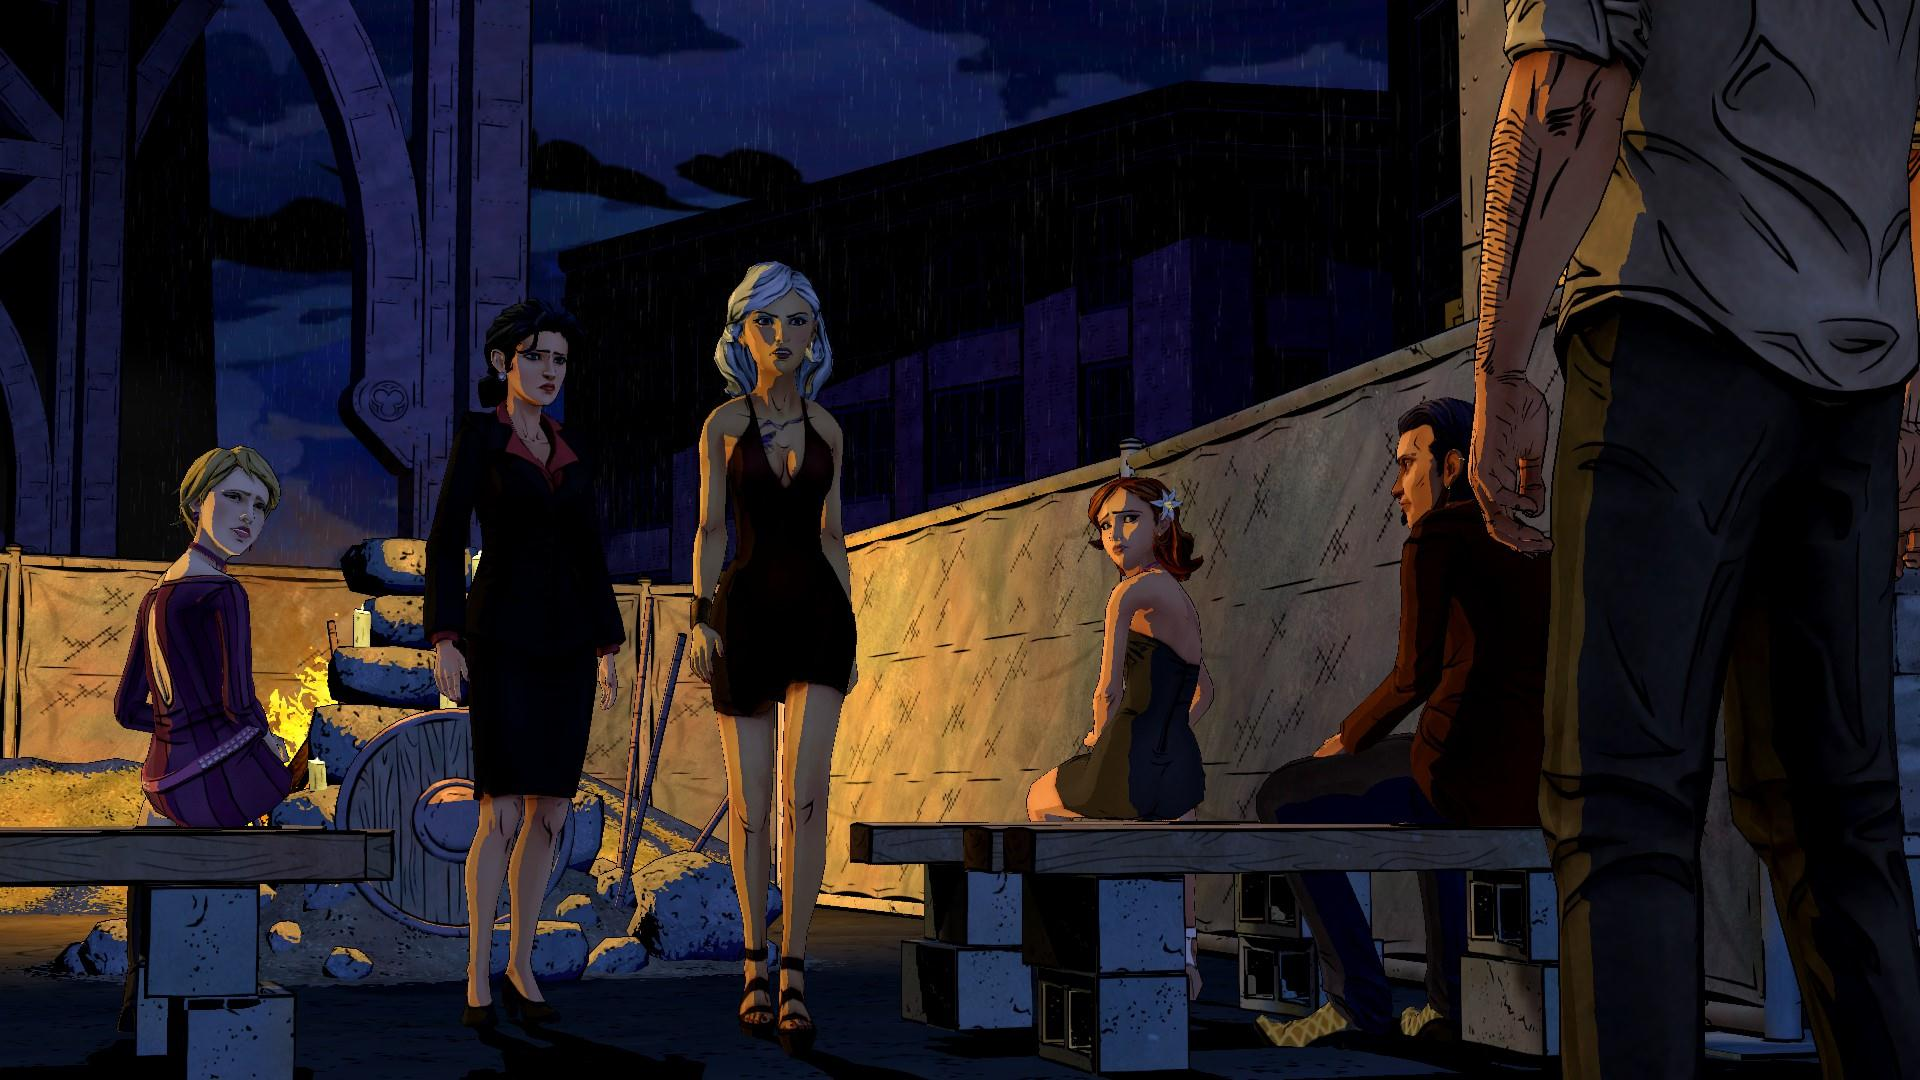 The Wolf Among Us Episode 3 Review Image 1